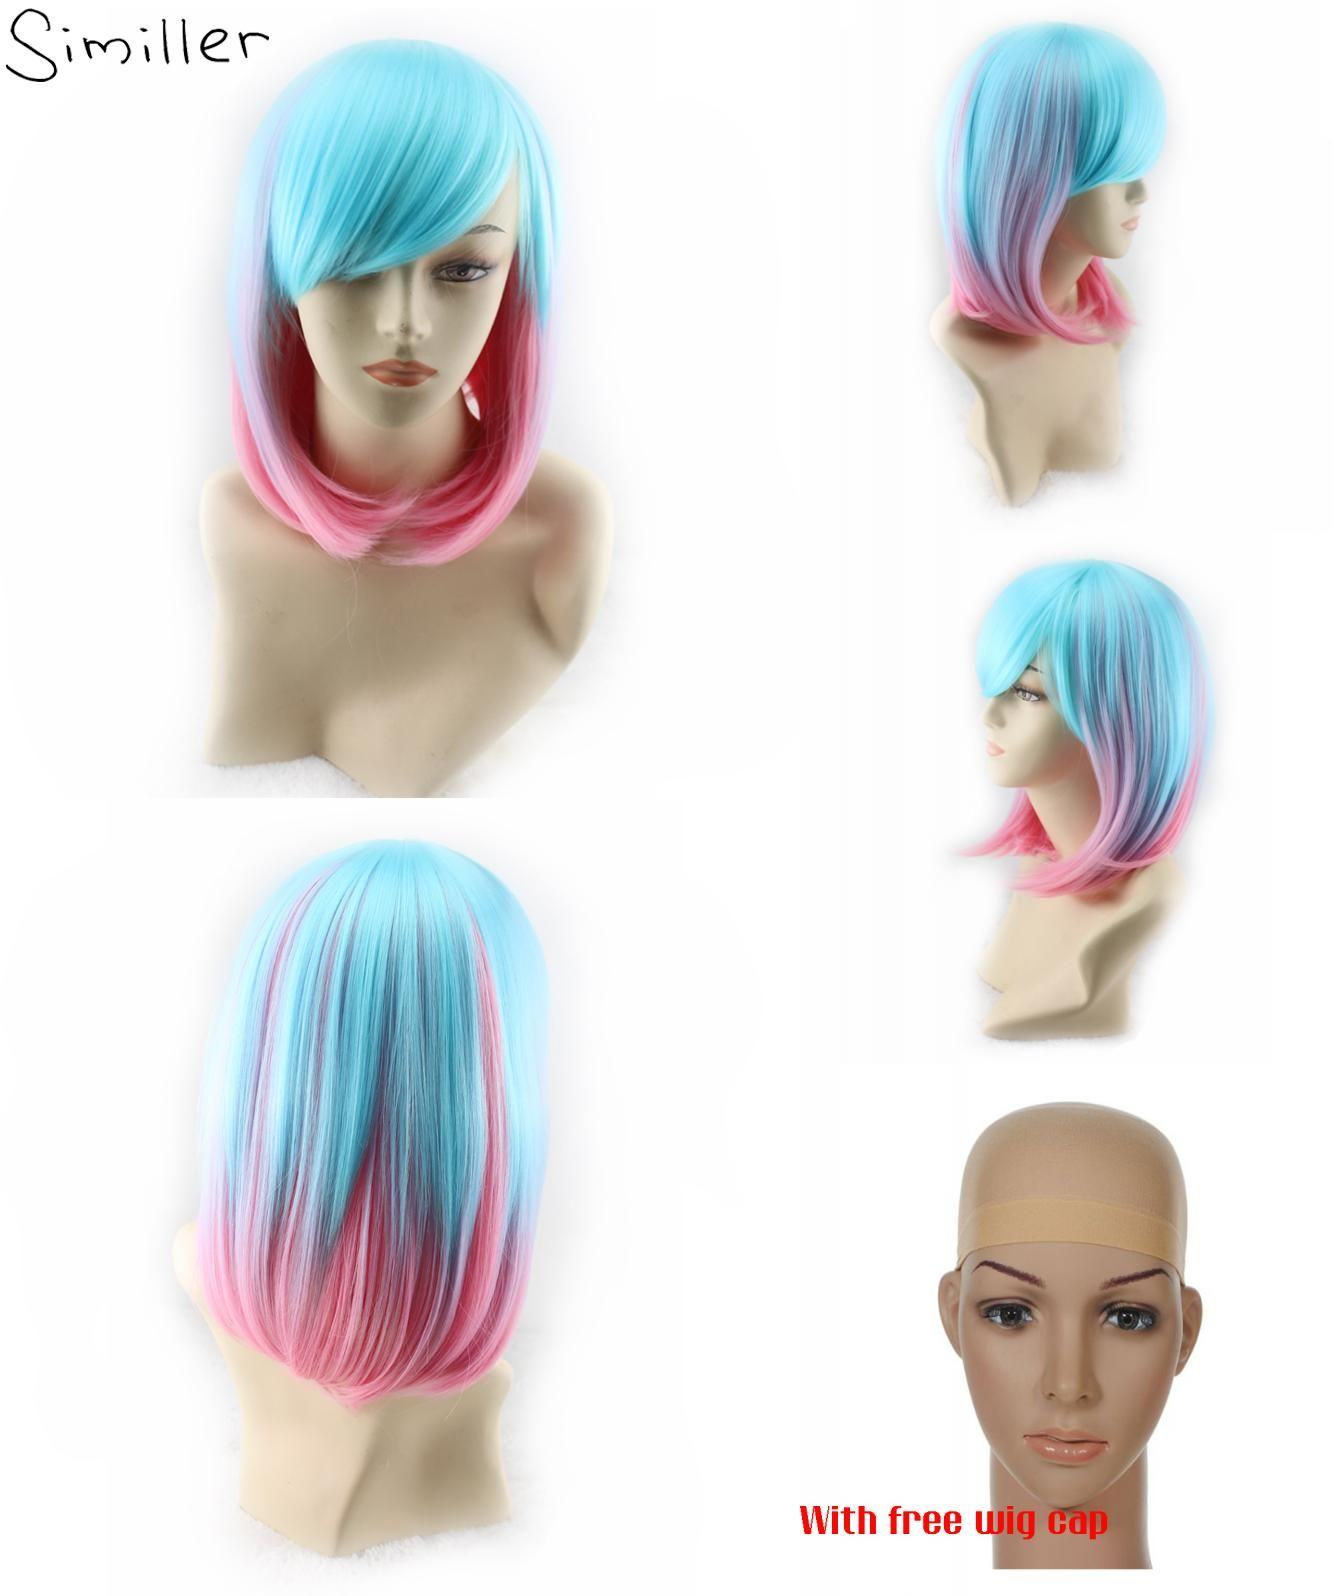 Visit To Buy Simille Women S Straight Short Hair Synthetic Wigs Blue Pink Mixed Colors For Cosplay Party Advertisement Short Hair Styles Synthetic Wigs Wigs